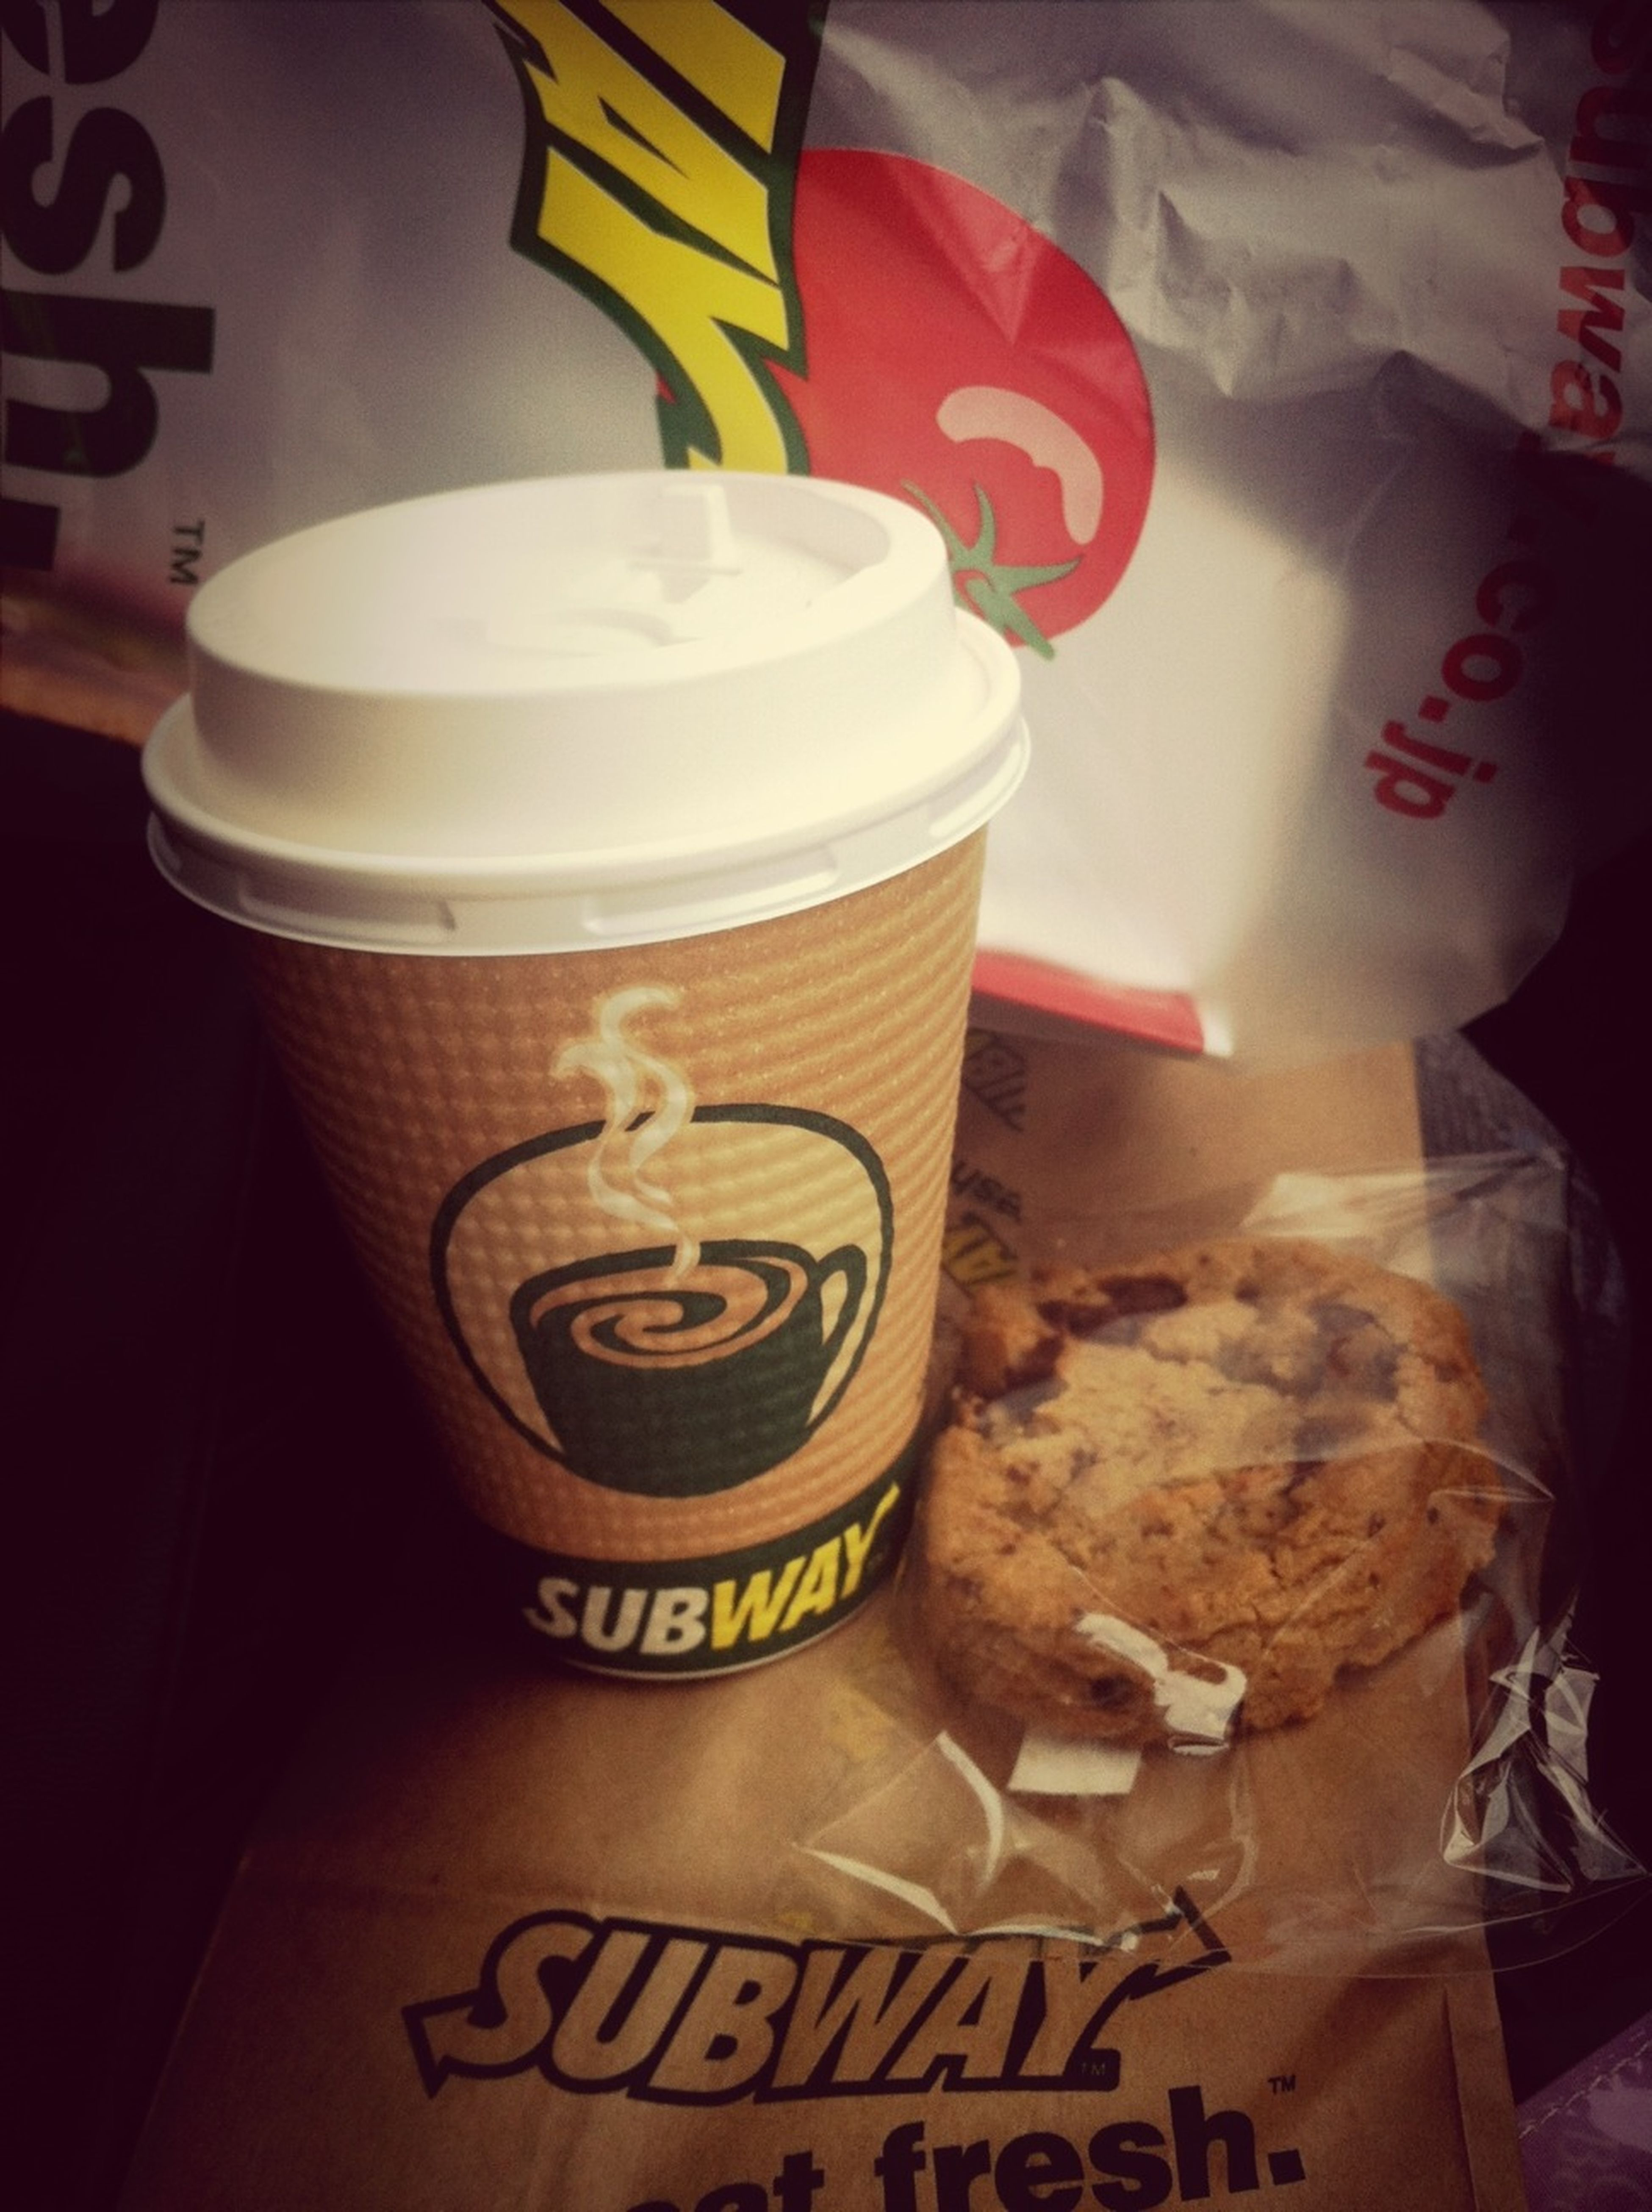 When I went to Canada,I met the subway.Japan doesn't have this in those days.Sn,I remember canadadays I go to the subway.